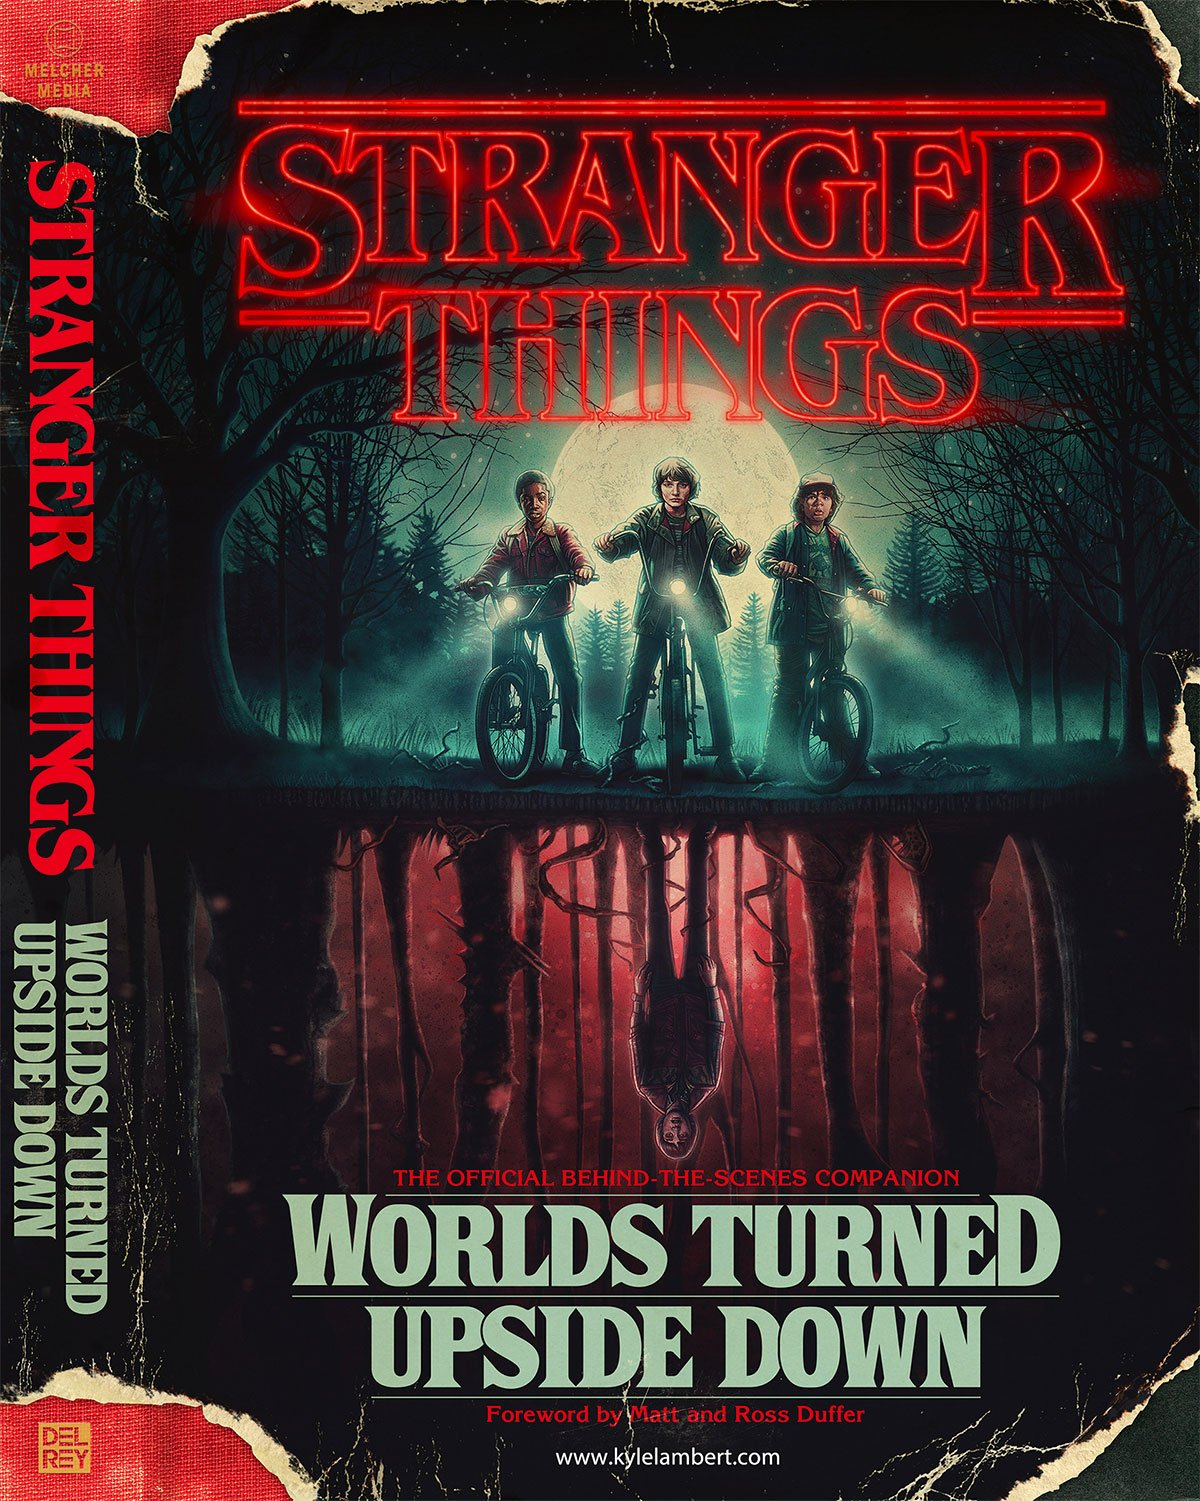 Stranger Things - Worlds Turned Upside Down by Kyle Lambert